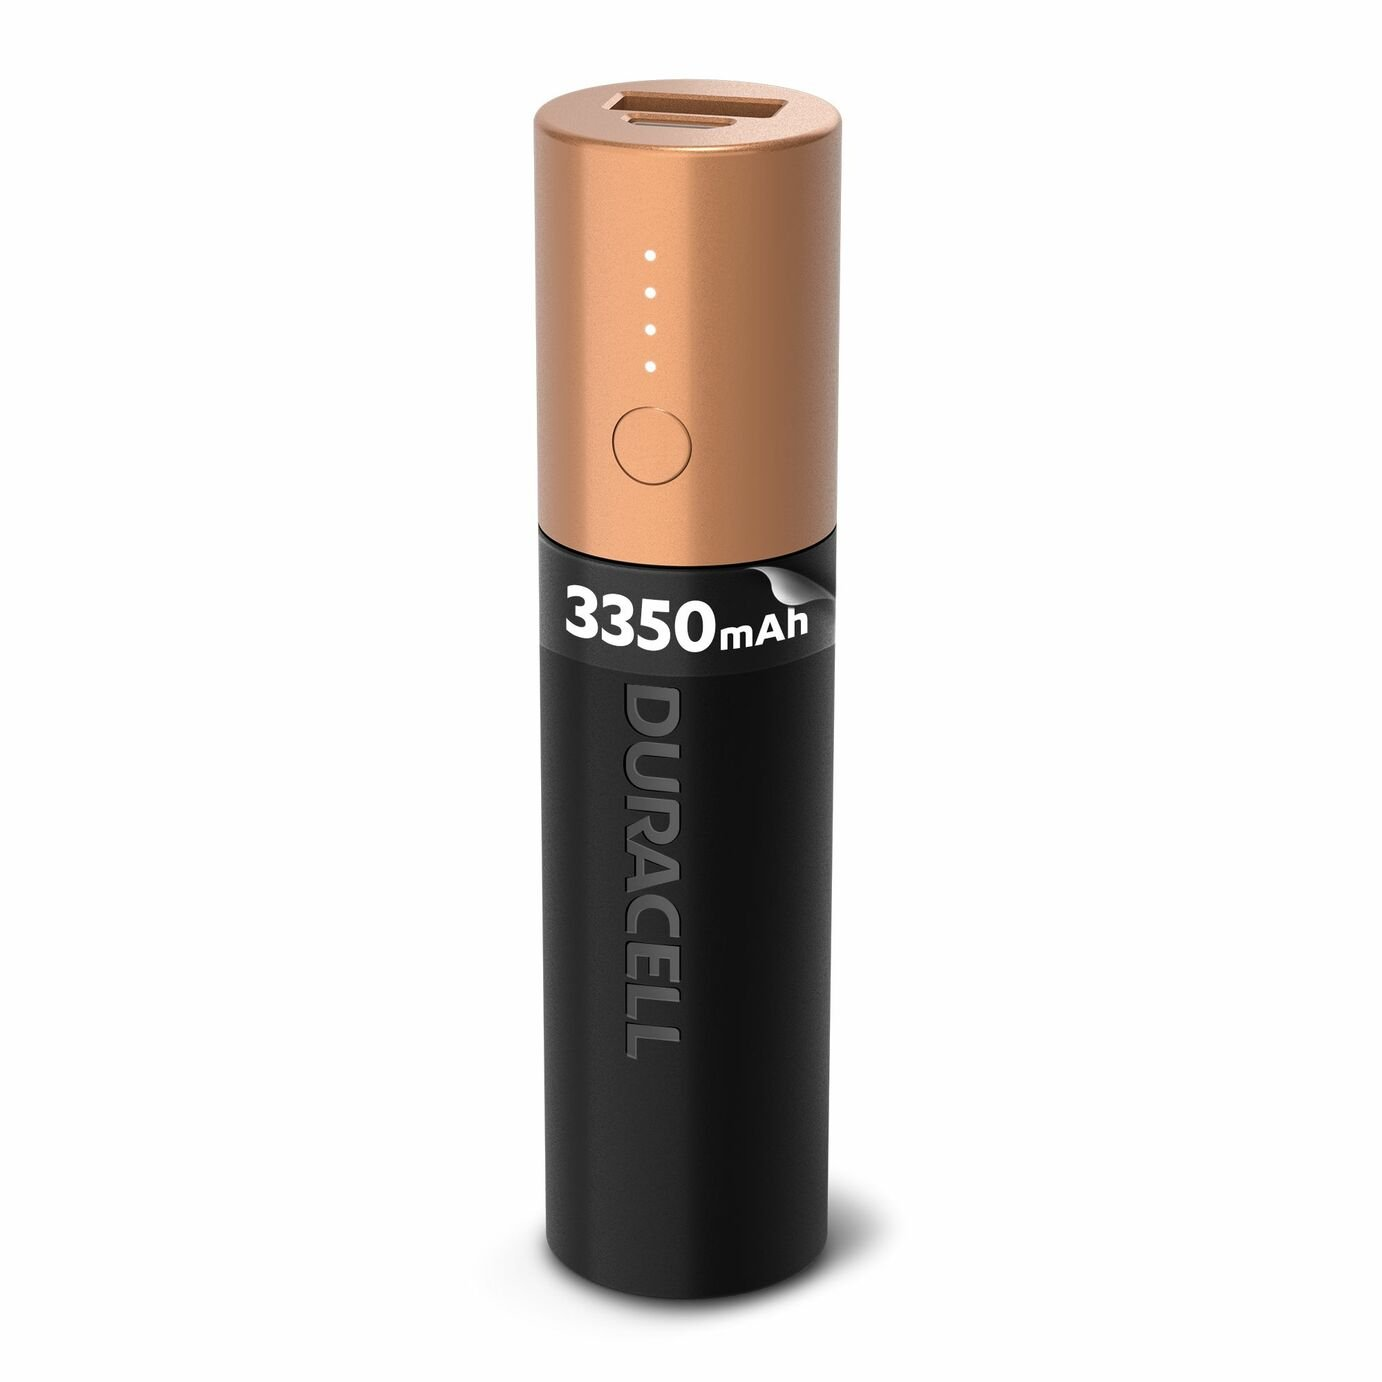 Duracell 3350 mAh Portable Power Bank review